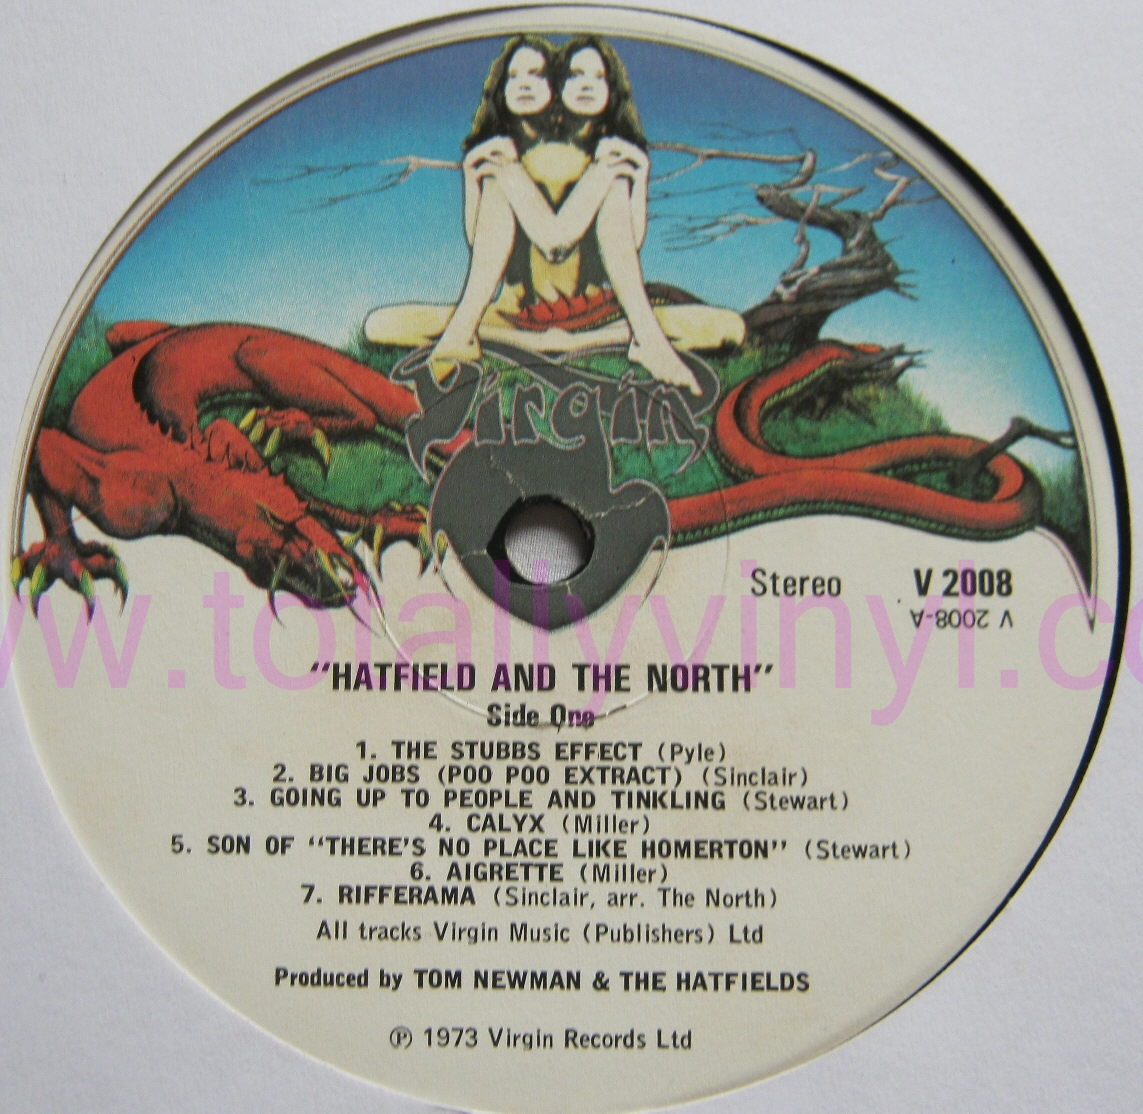 north hatfield Find album reviews, stream songs, credits and award information for hatfield and the north - hatfield and the north on allmusic - 1974 - one of the canterbury scene's most revered bands,&hellip.